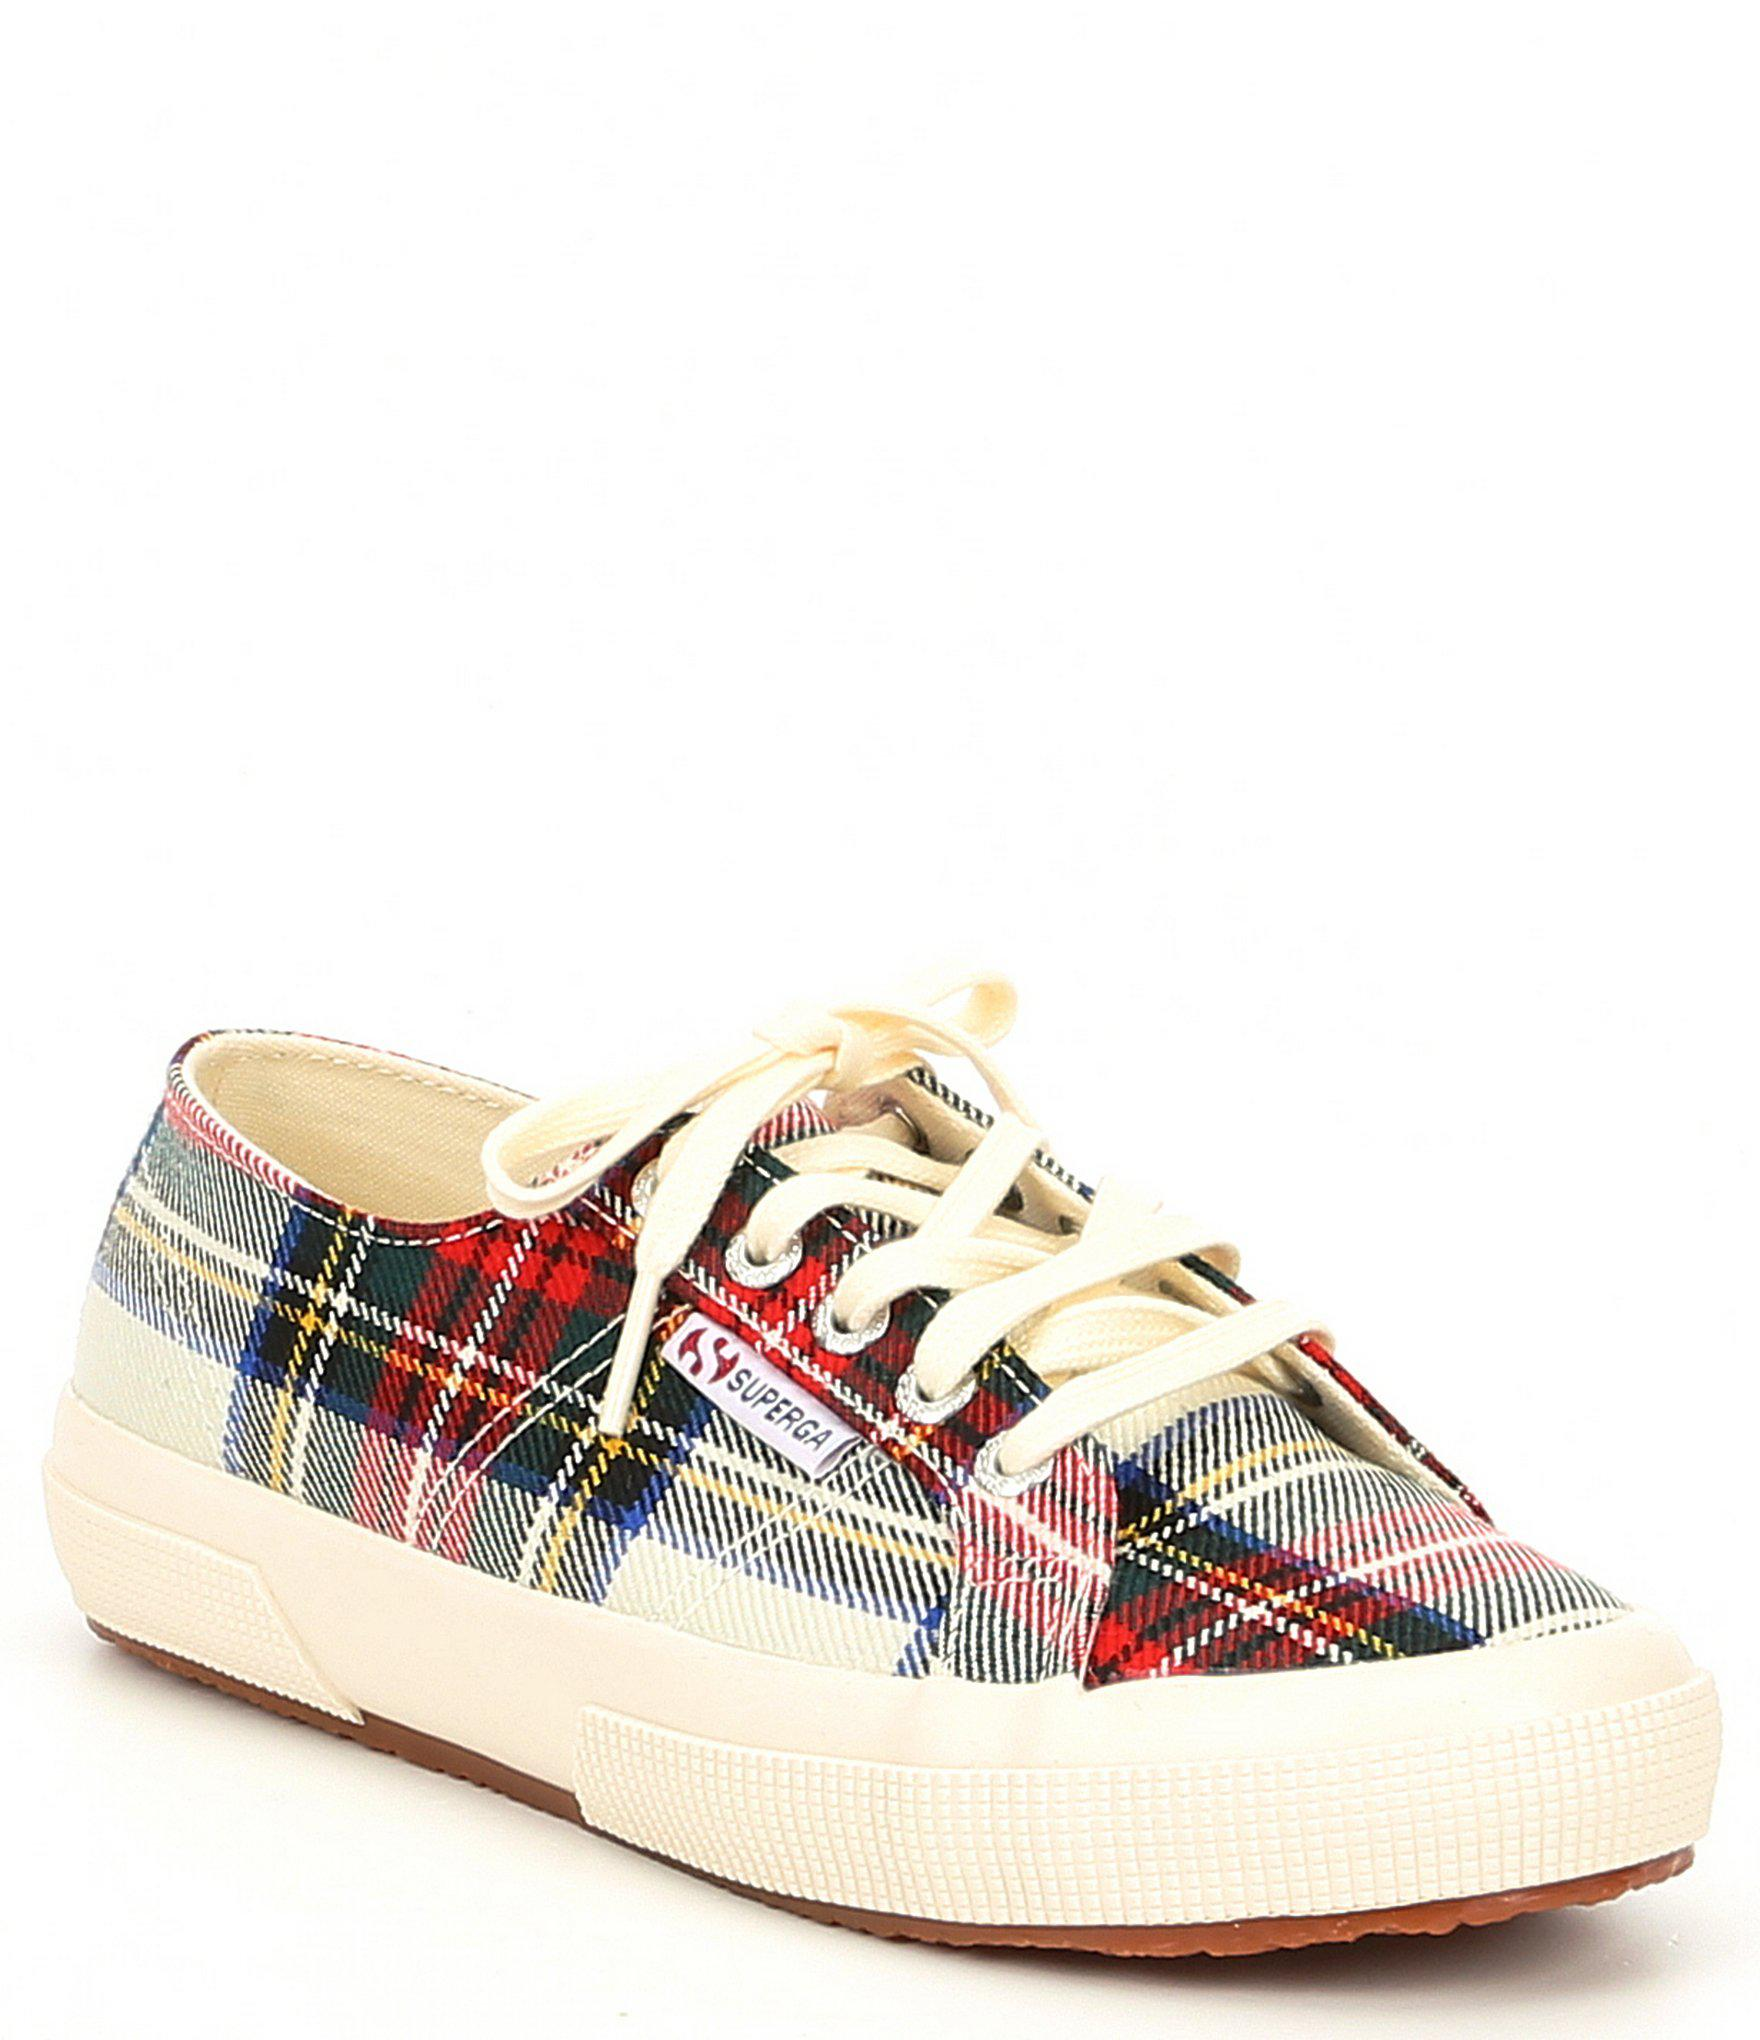 f70fdad0aa79 Superga 2750 Tartan Checkered Sneakers in Red - Lyst